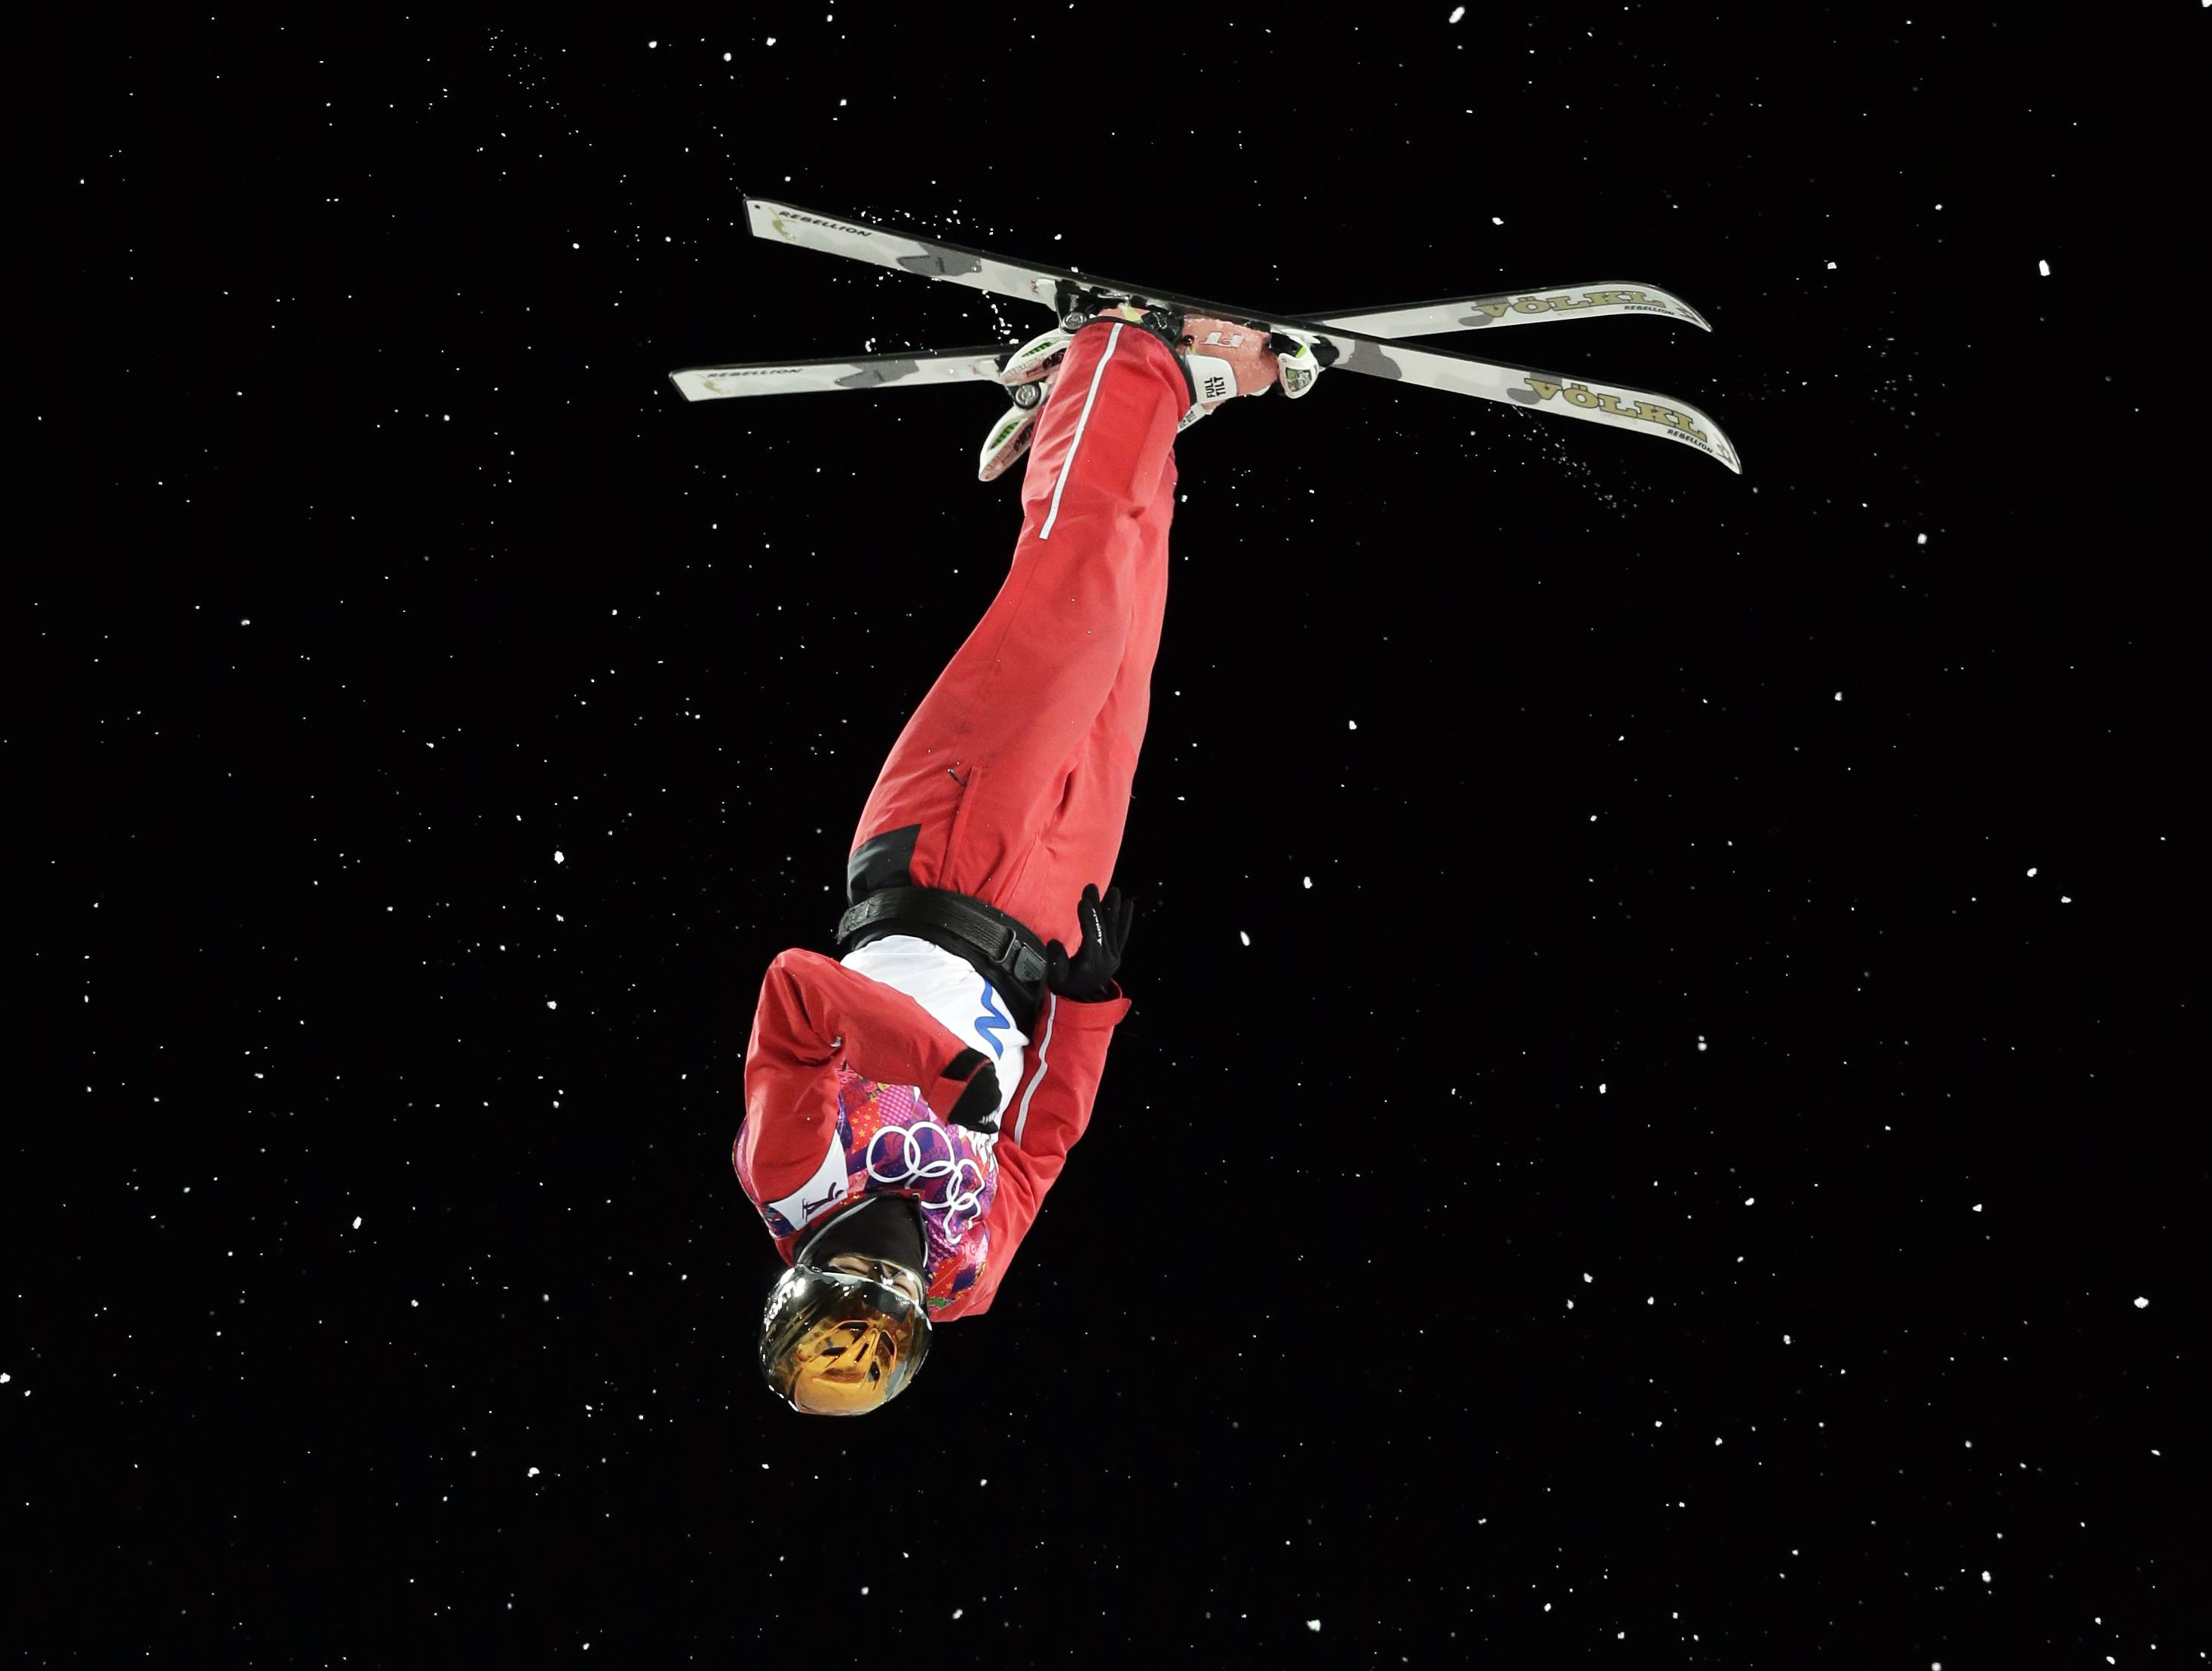 China's Xu Mengtao makes her silver medal winning jump during the women's freestyle skiing aerials final at the Rosa Khutor Extreme Park, at the 2014 Winter Olympics, Friday, Feb. 14, 2014, in Krasnaya Polyana, Russia.